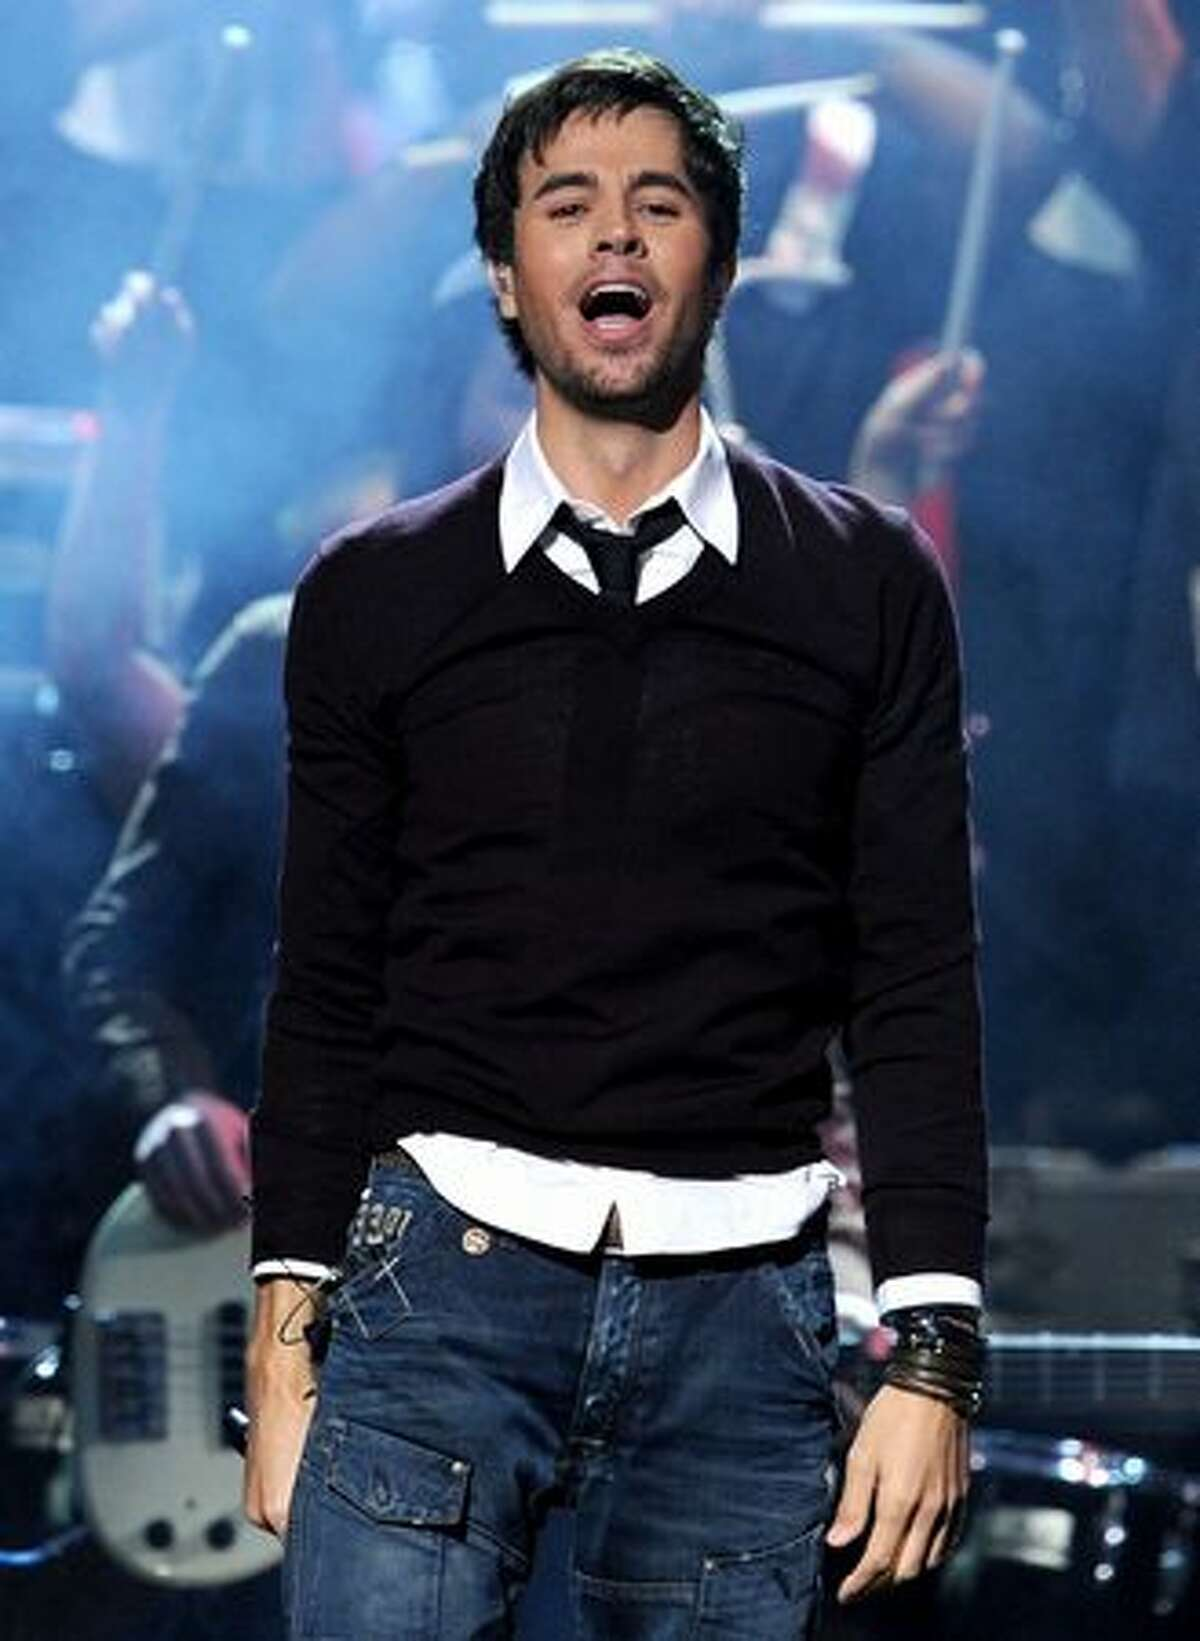 Singer Enrique Iglesias performs onstage during the 11th annual Latin GRAMMY Awards at the Mandalay Bay Events Center in Las Vegas, Nevada.